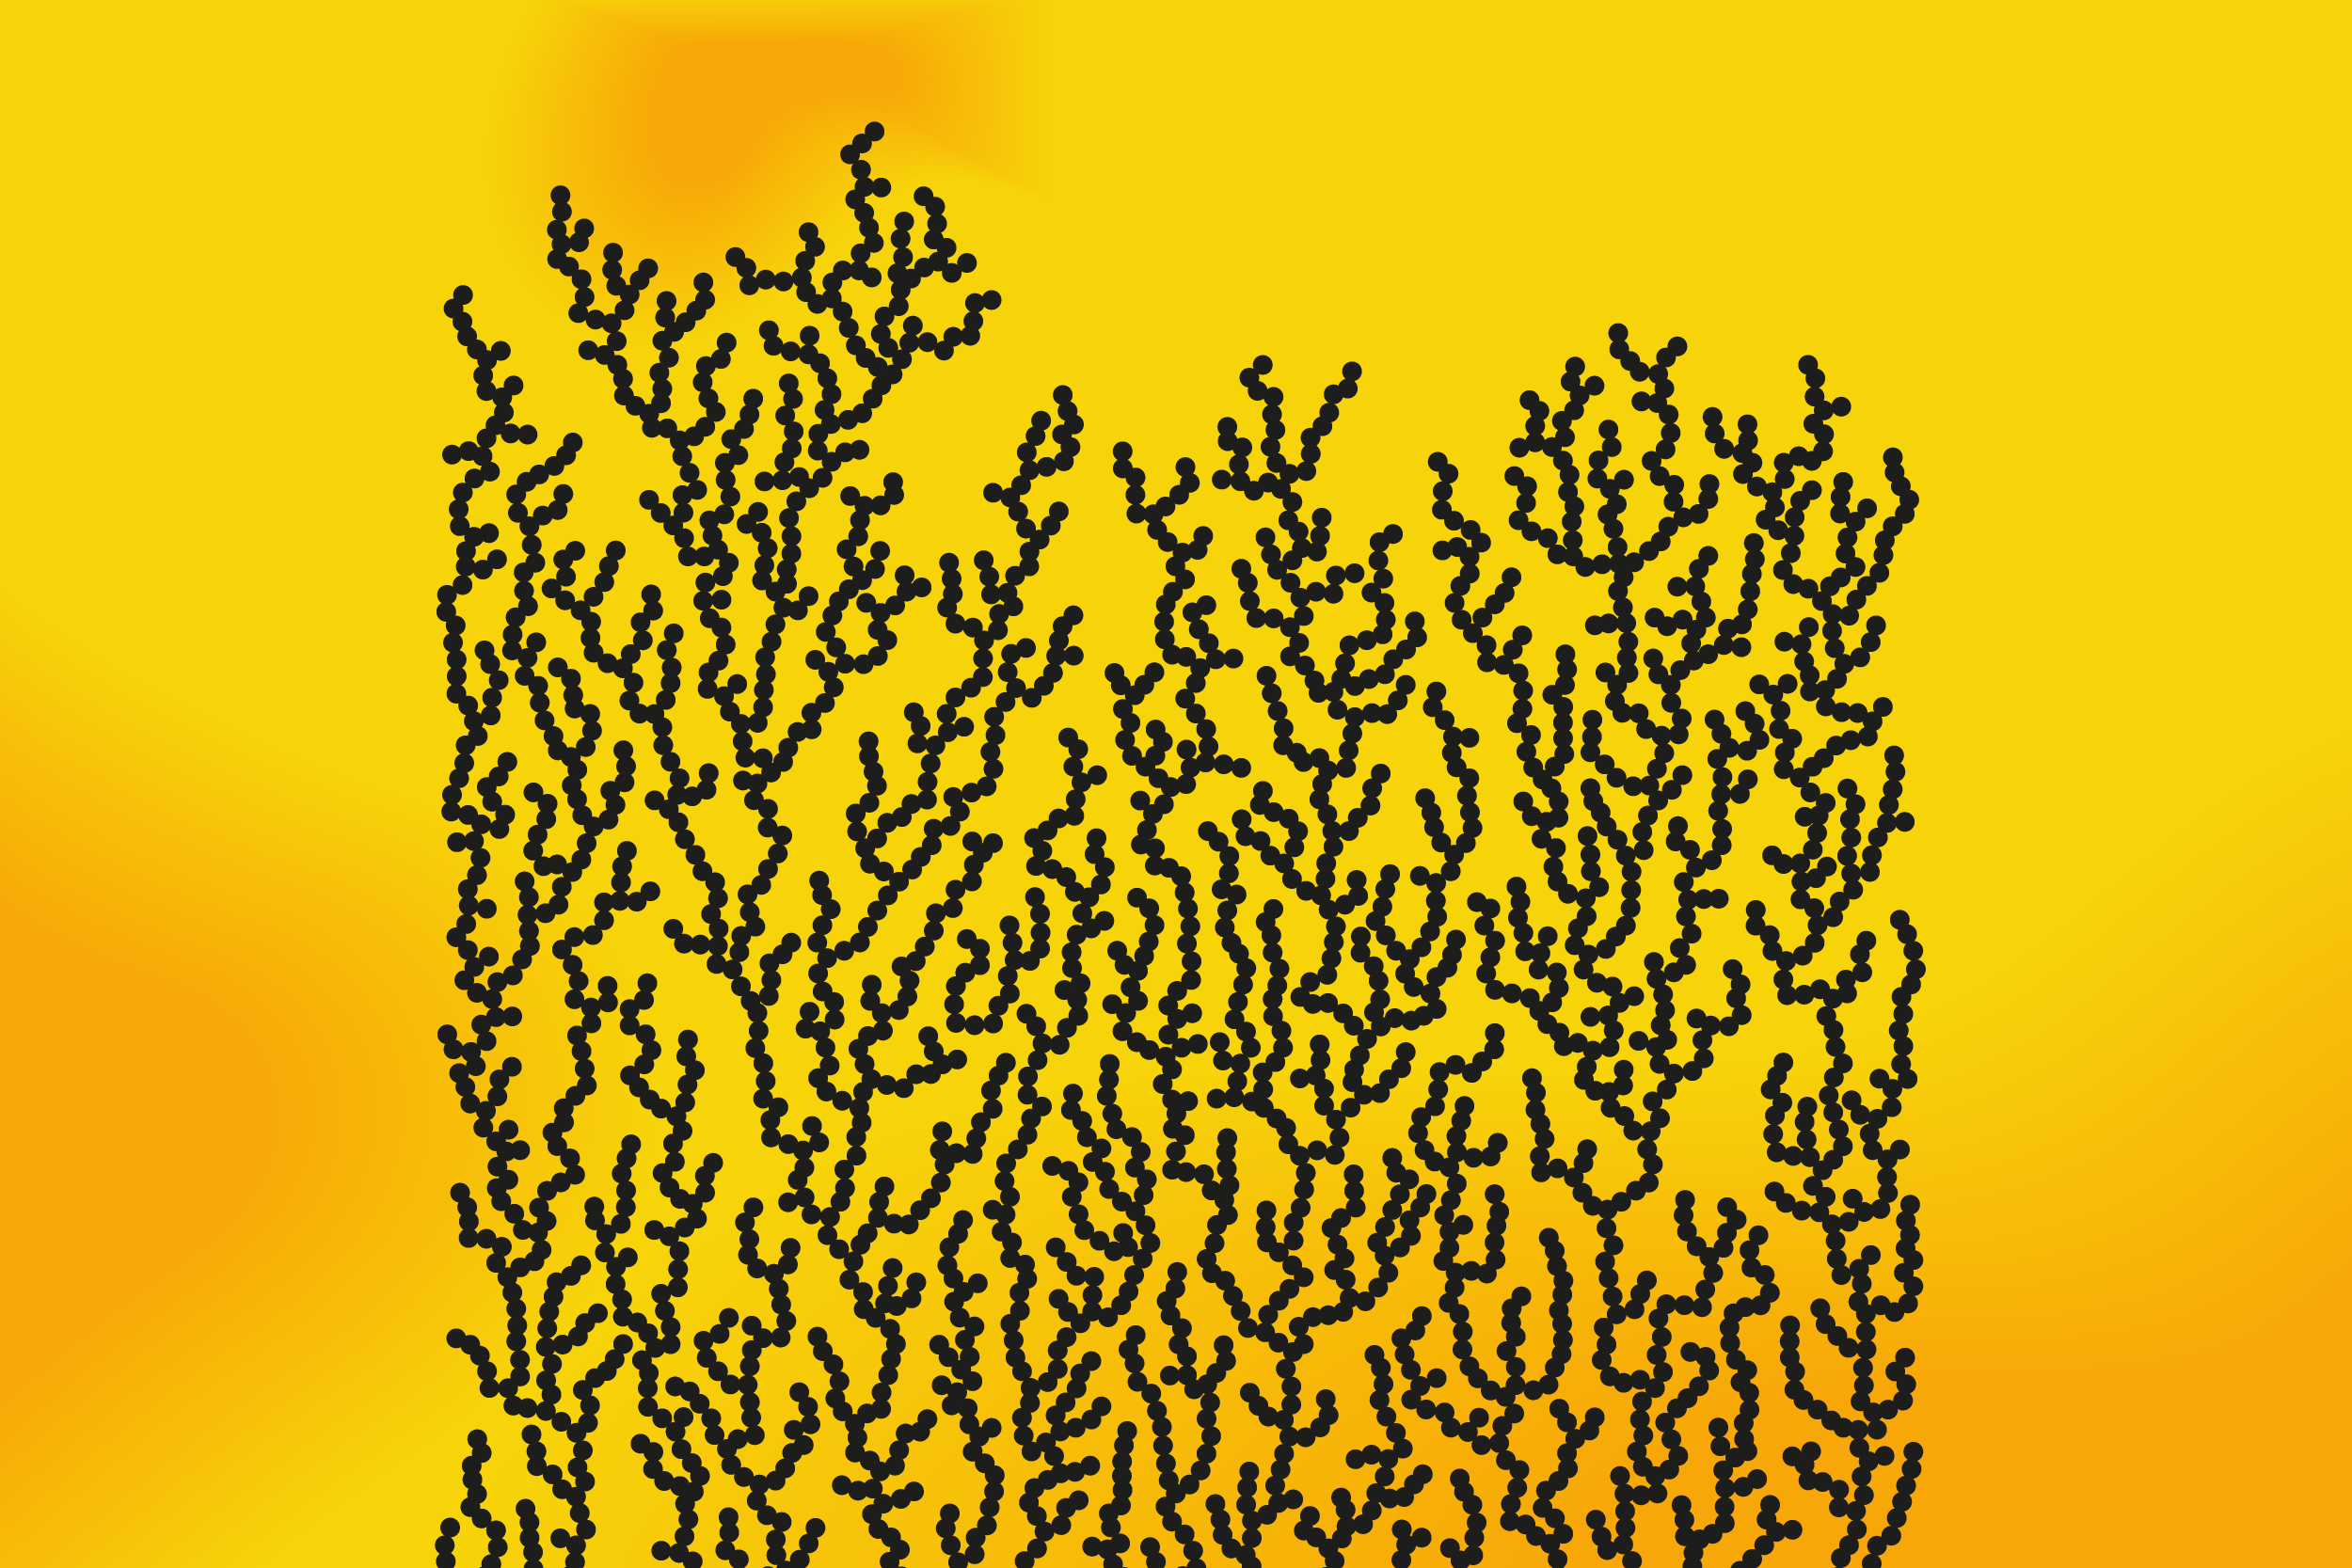 A graphic showing dendrite shapes on a yellow background